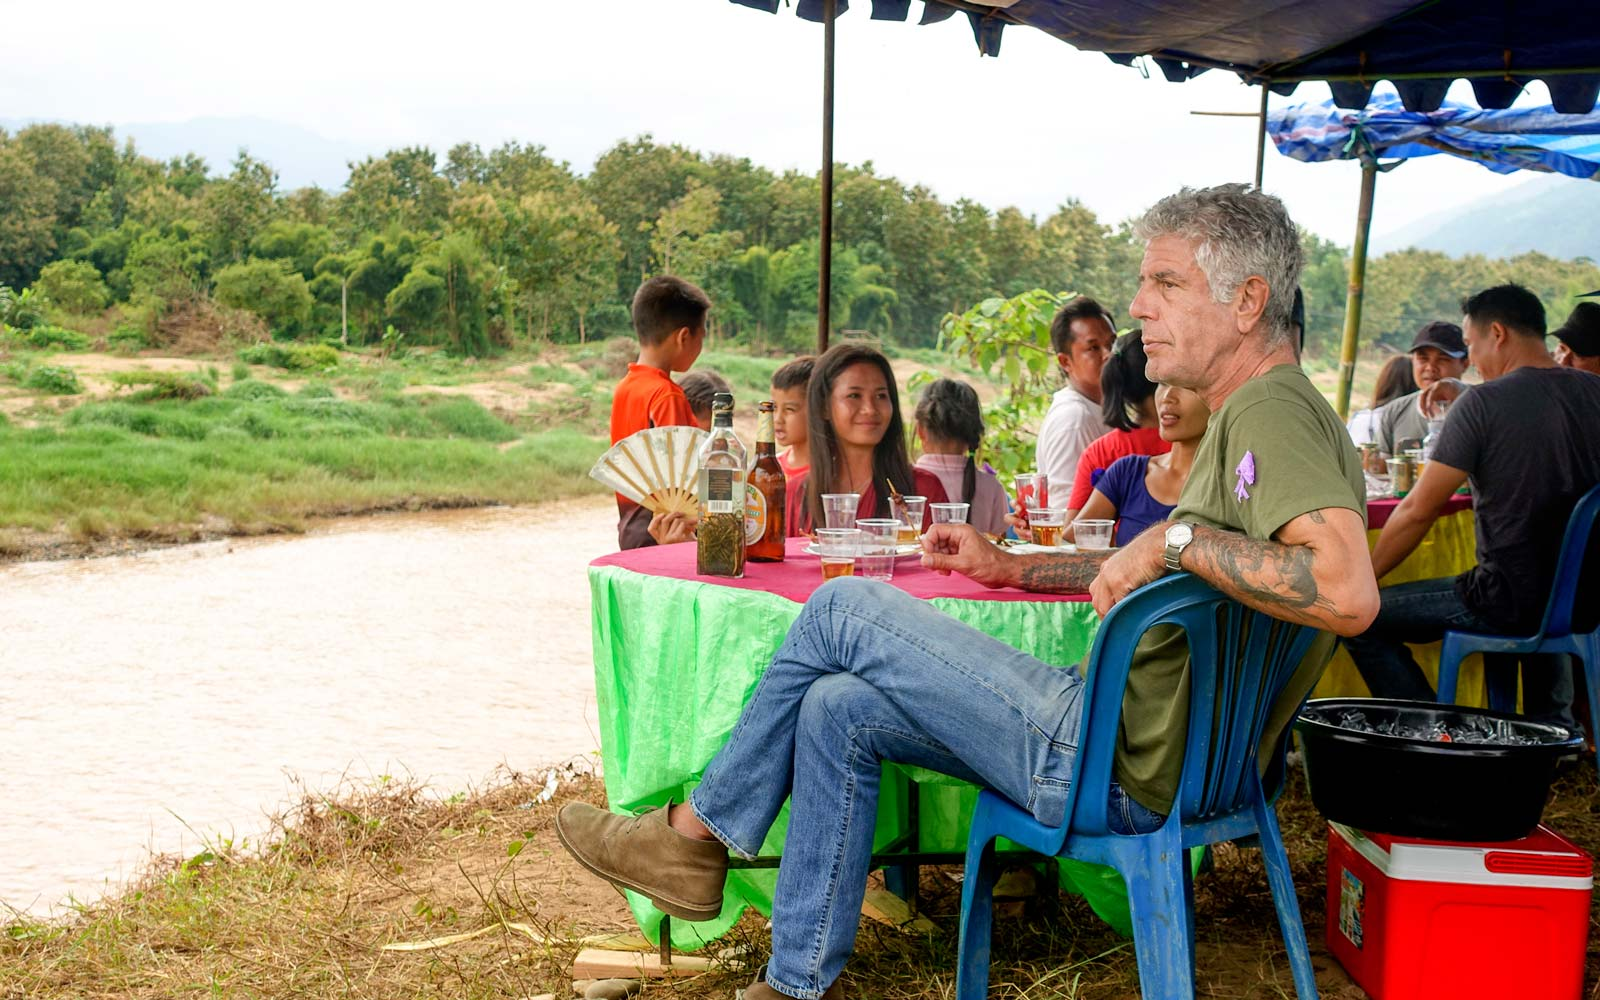 Anthony Bourdain Explores the Dark Hidden History of Laos